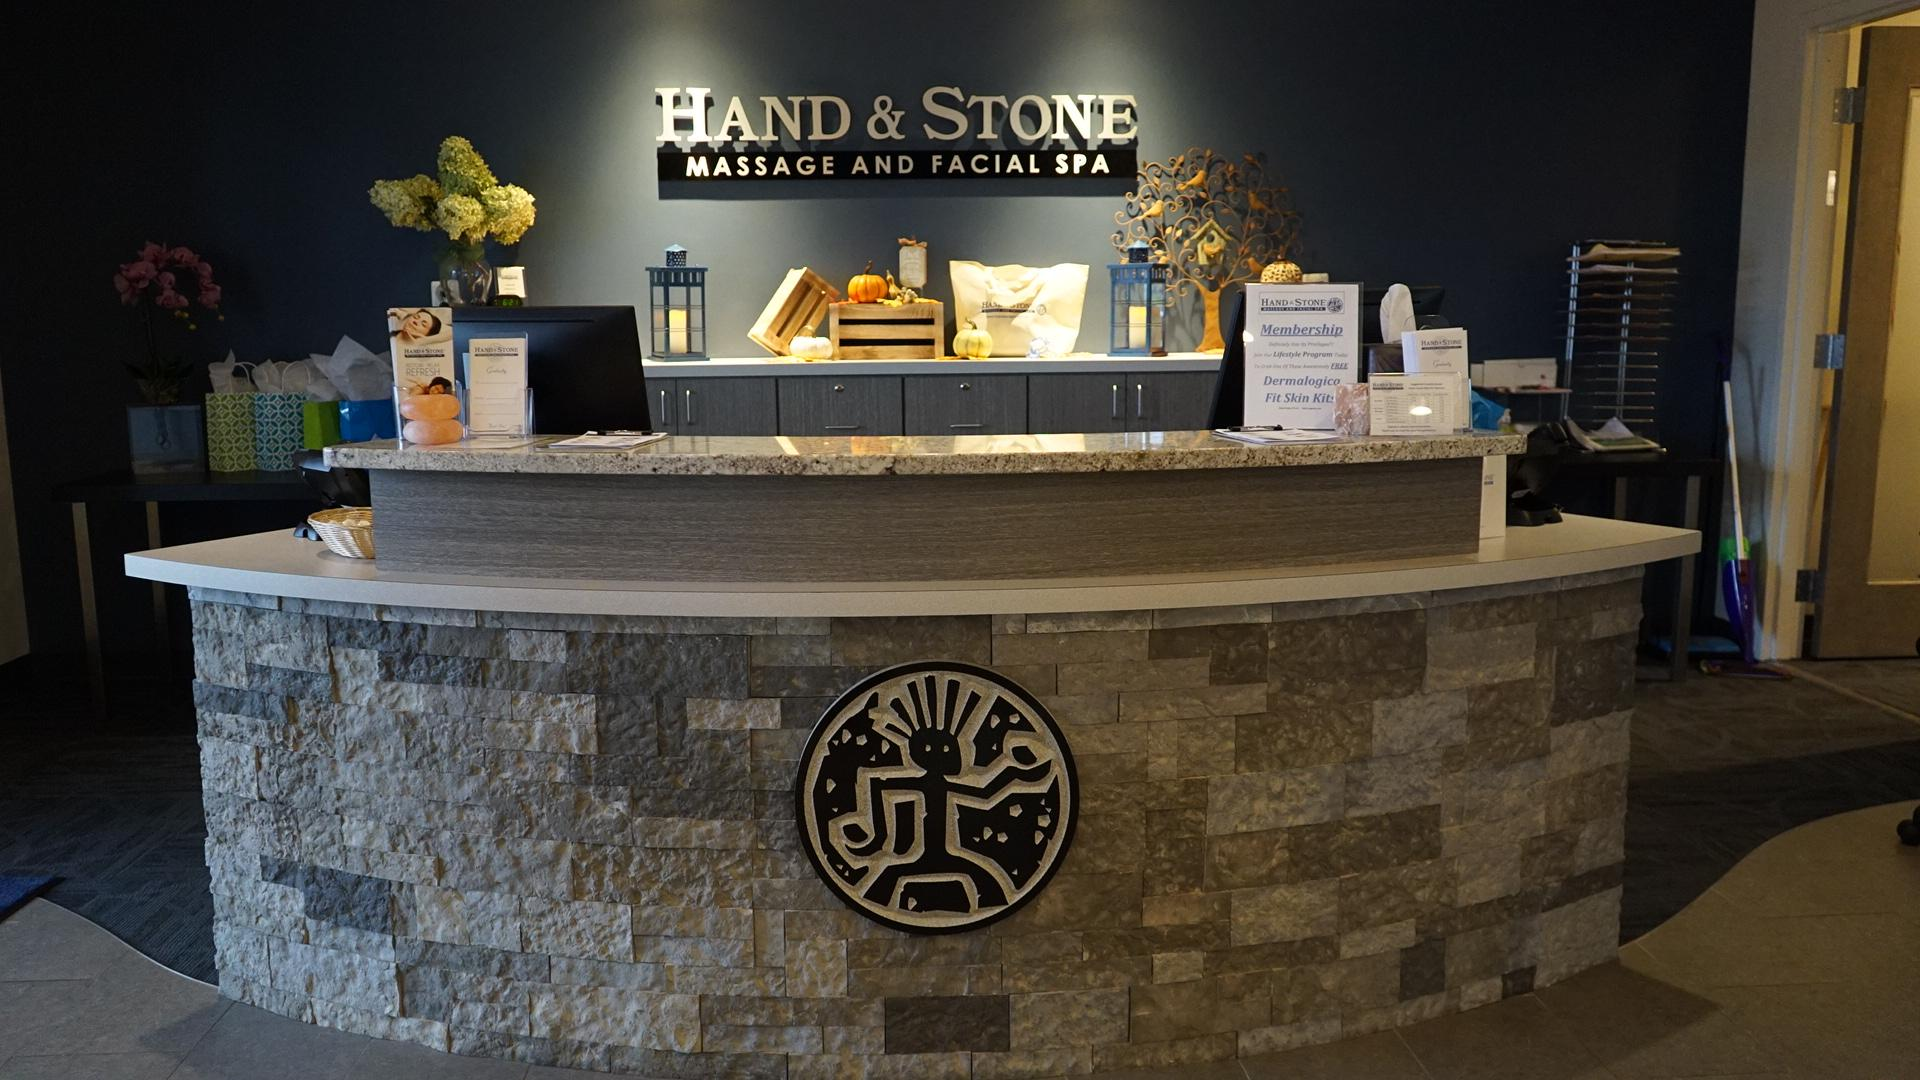 Come visit our spa today!